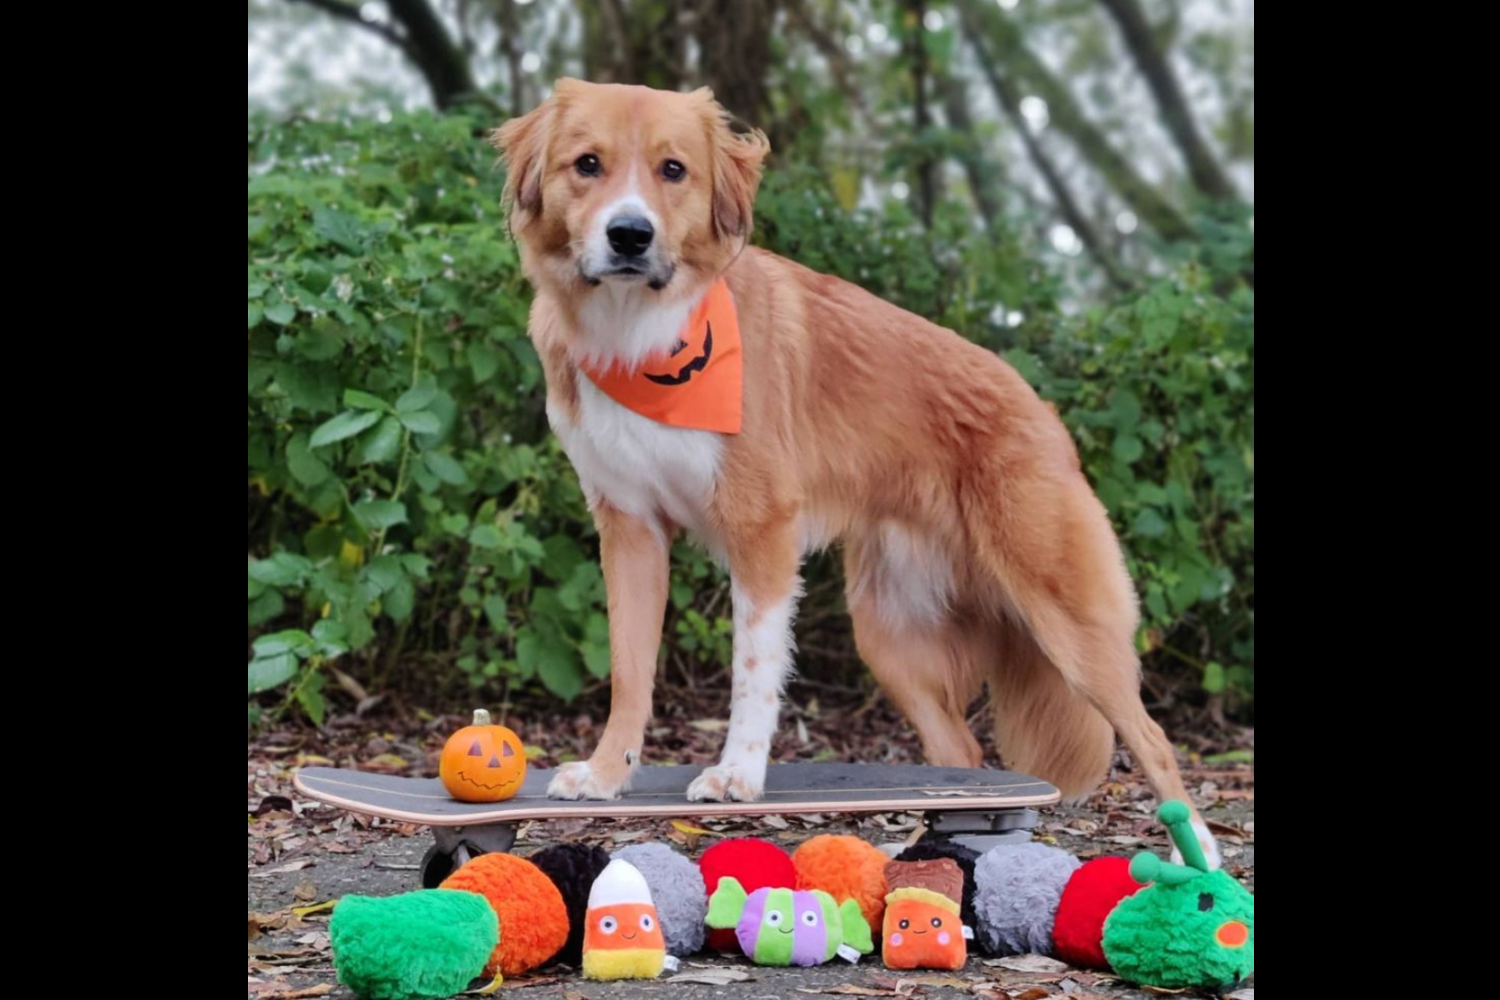 Darrel the Doge with stuffies (Image: Hailey Adair)